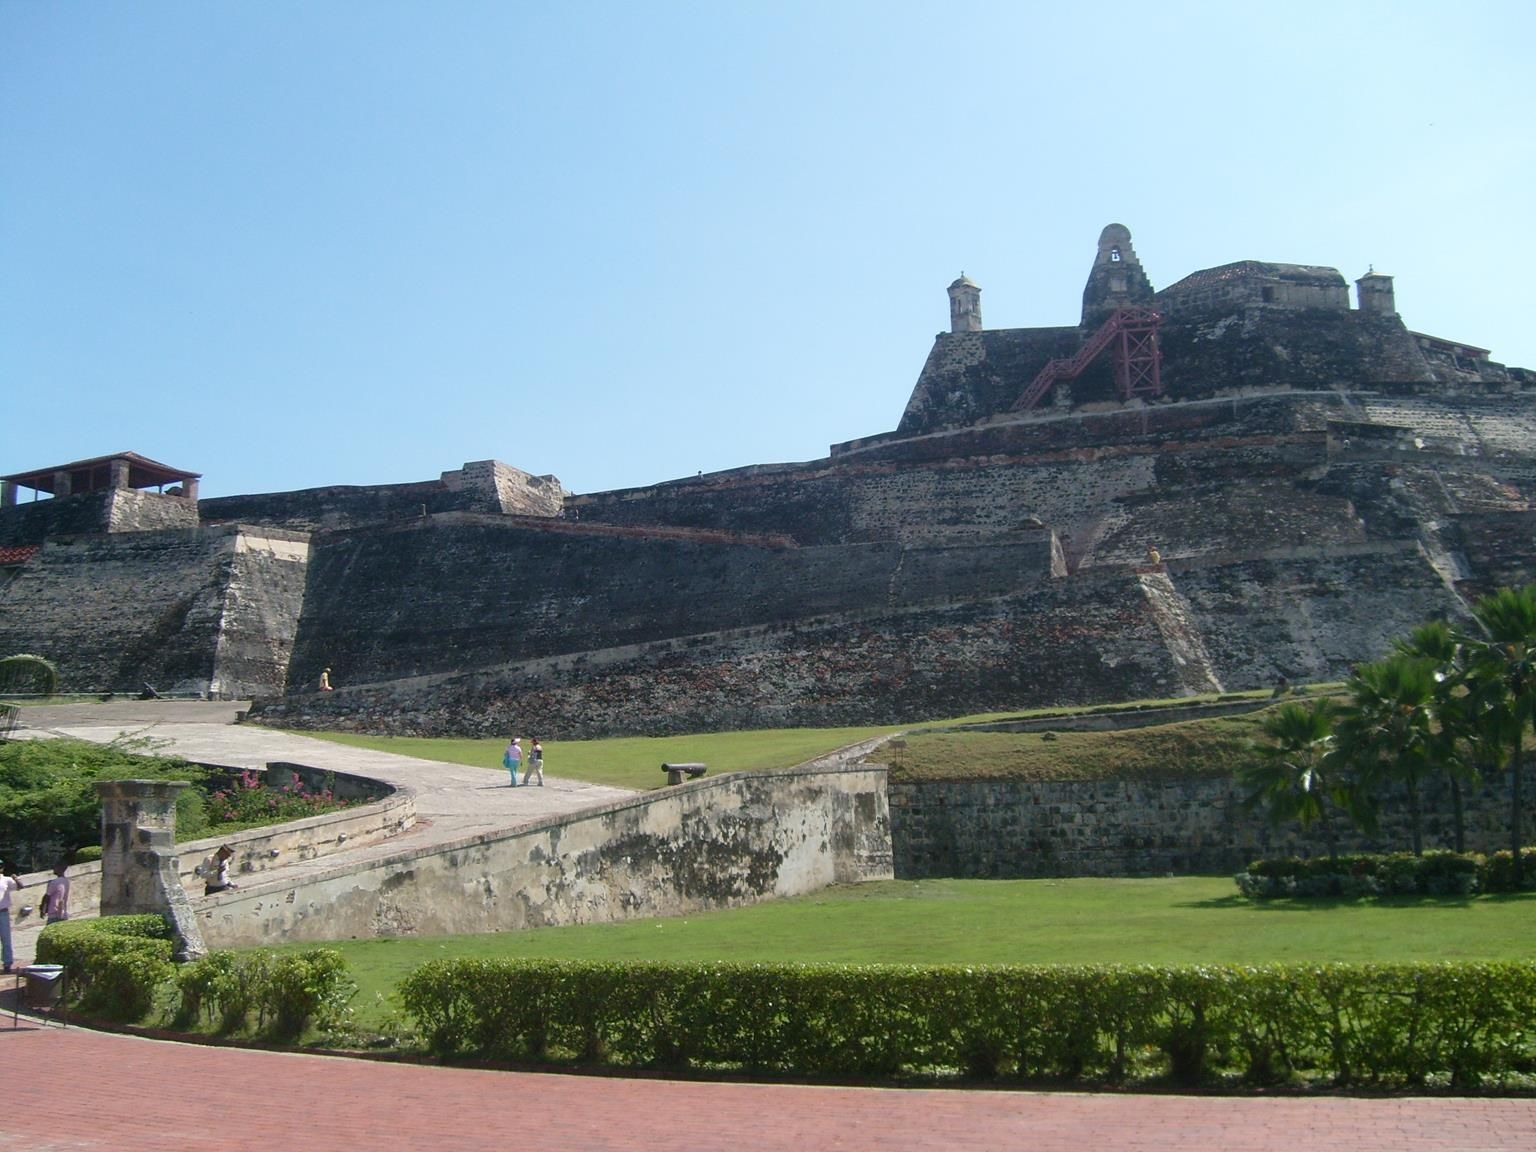 The iconic fortification El Castillo in Cartagena. Get there by bus with AndesTransit.com